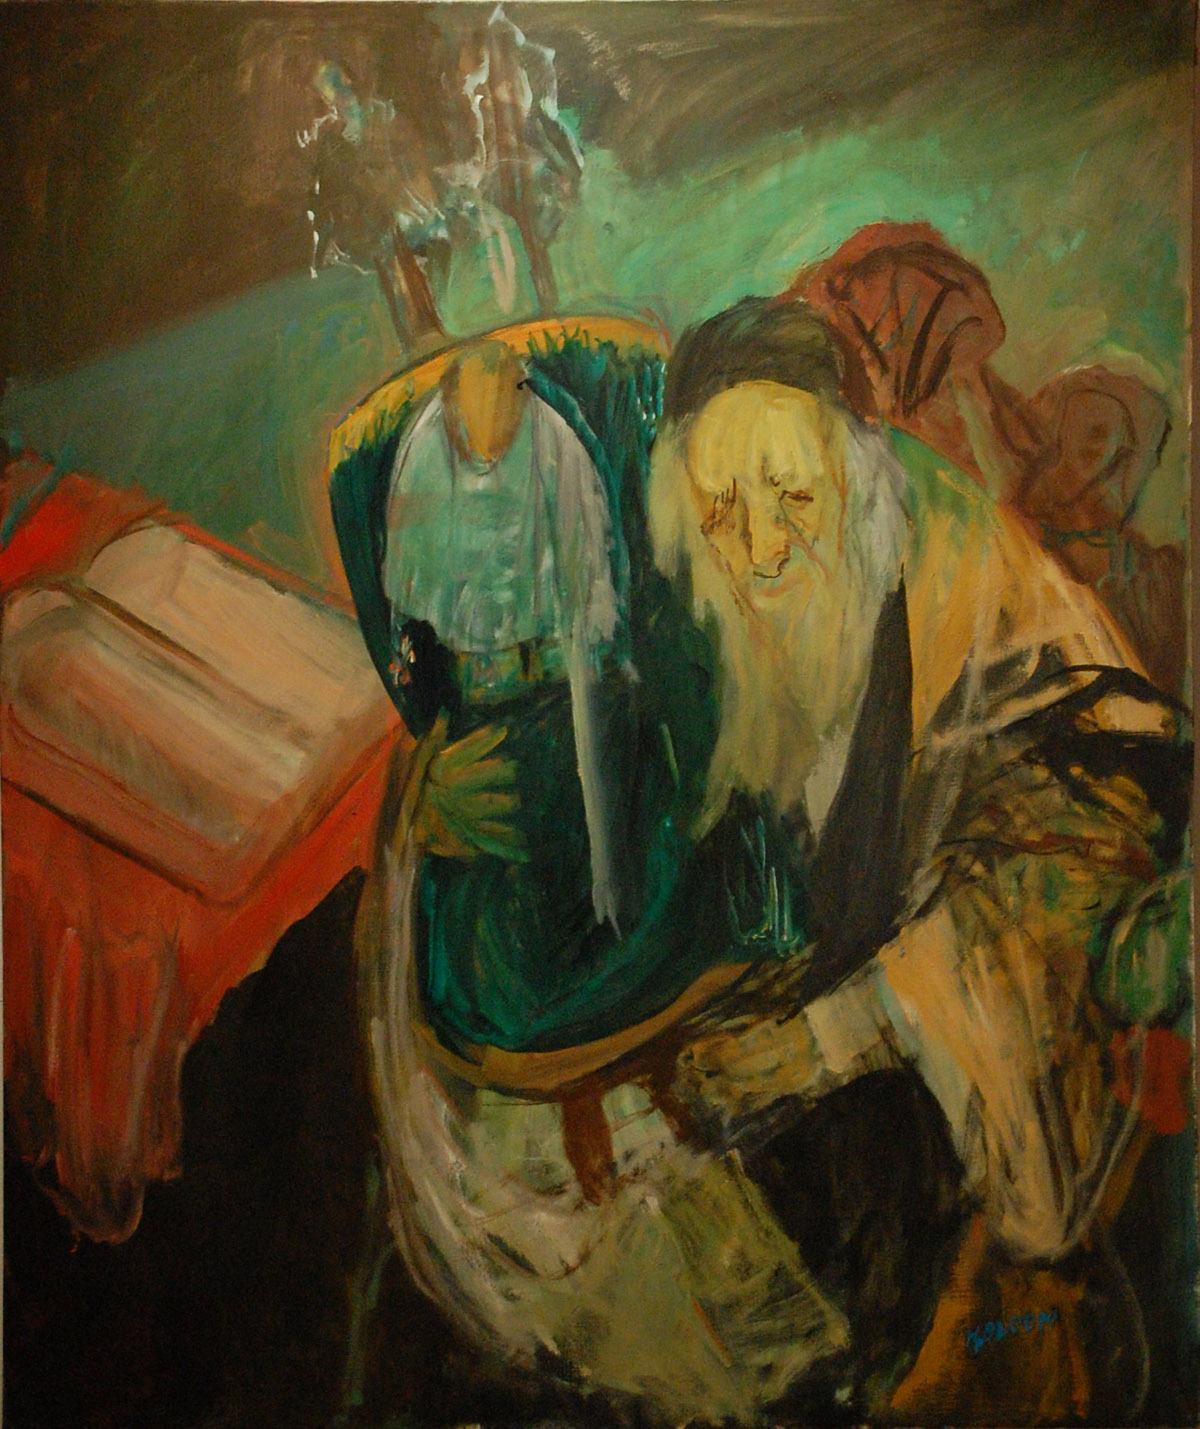 Rabbi with Torah, oil on canvas, by Hyman Bloom Courtesy of The Jewish Gallery